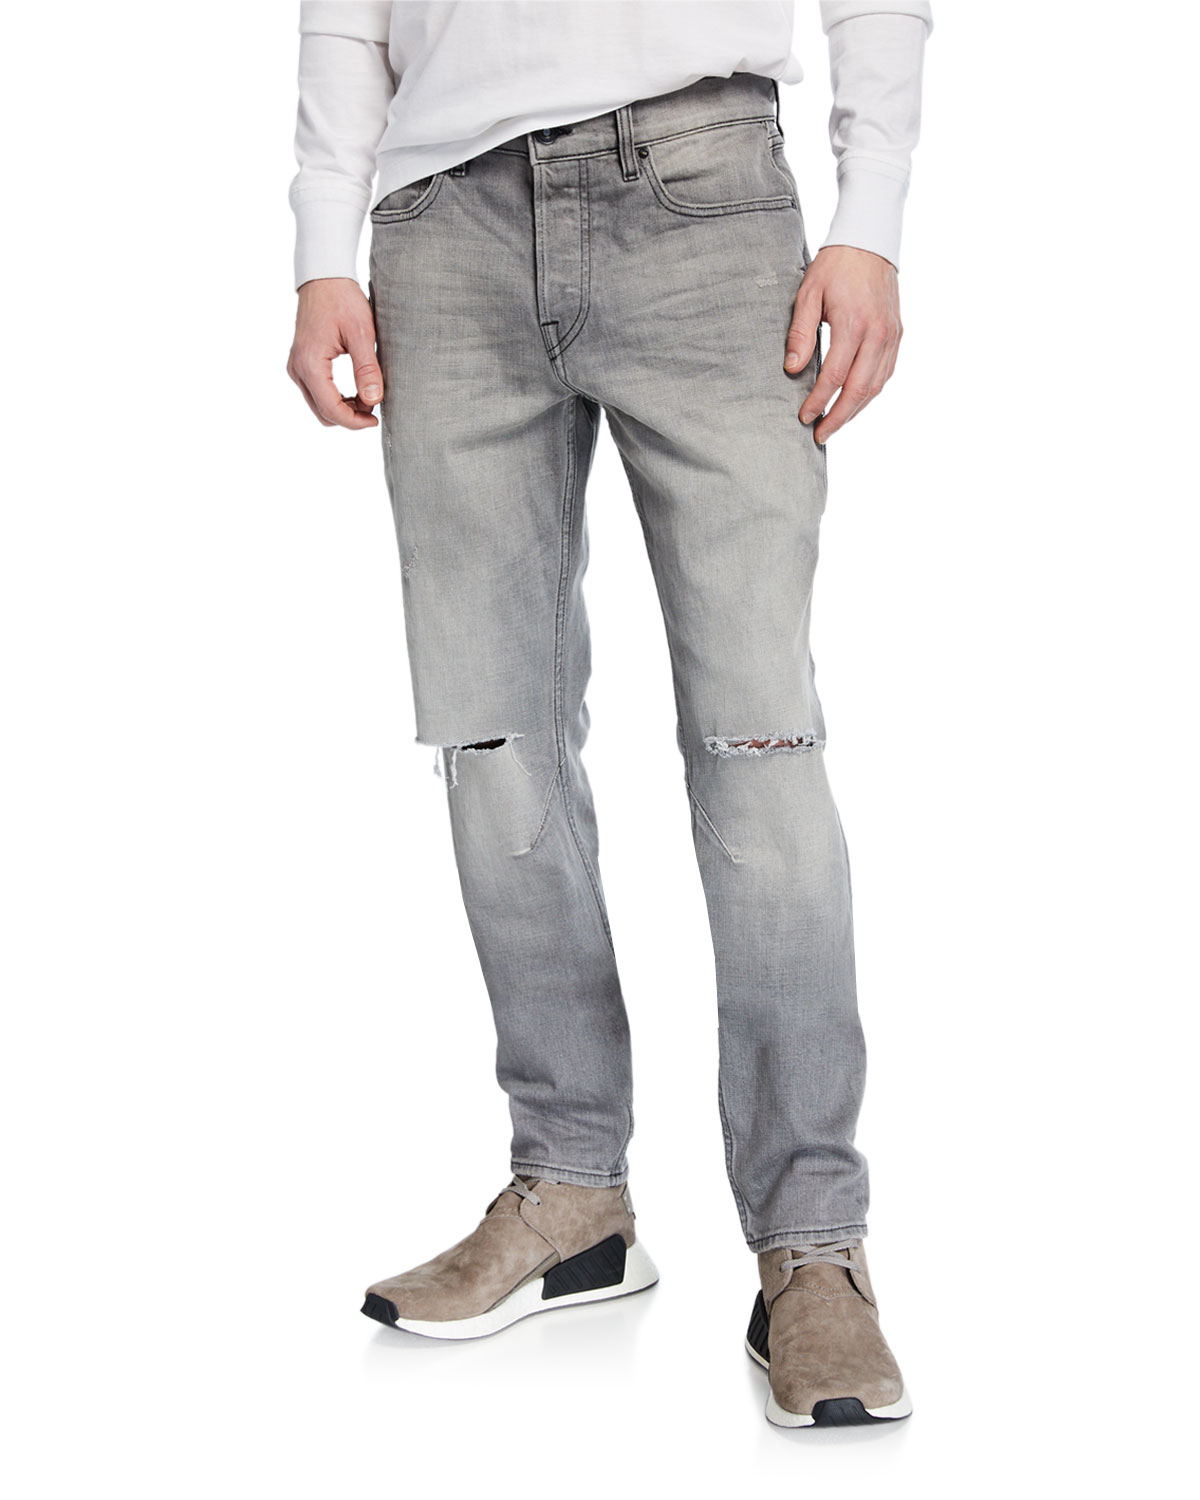 running shoes comfortable feel numerousinvariety Men's Sartor Rip-Knee Skinny Jeans in Gray